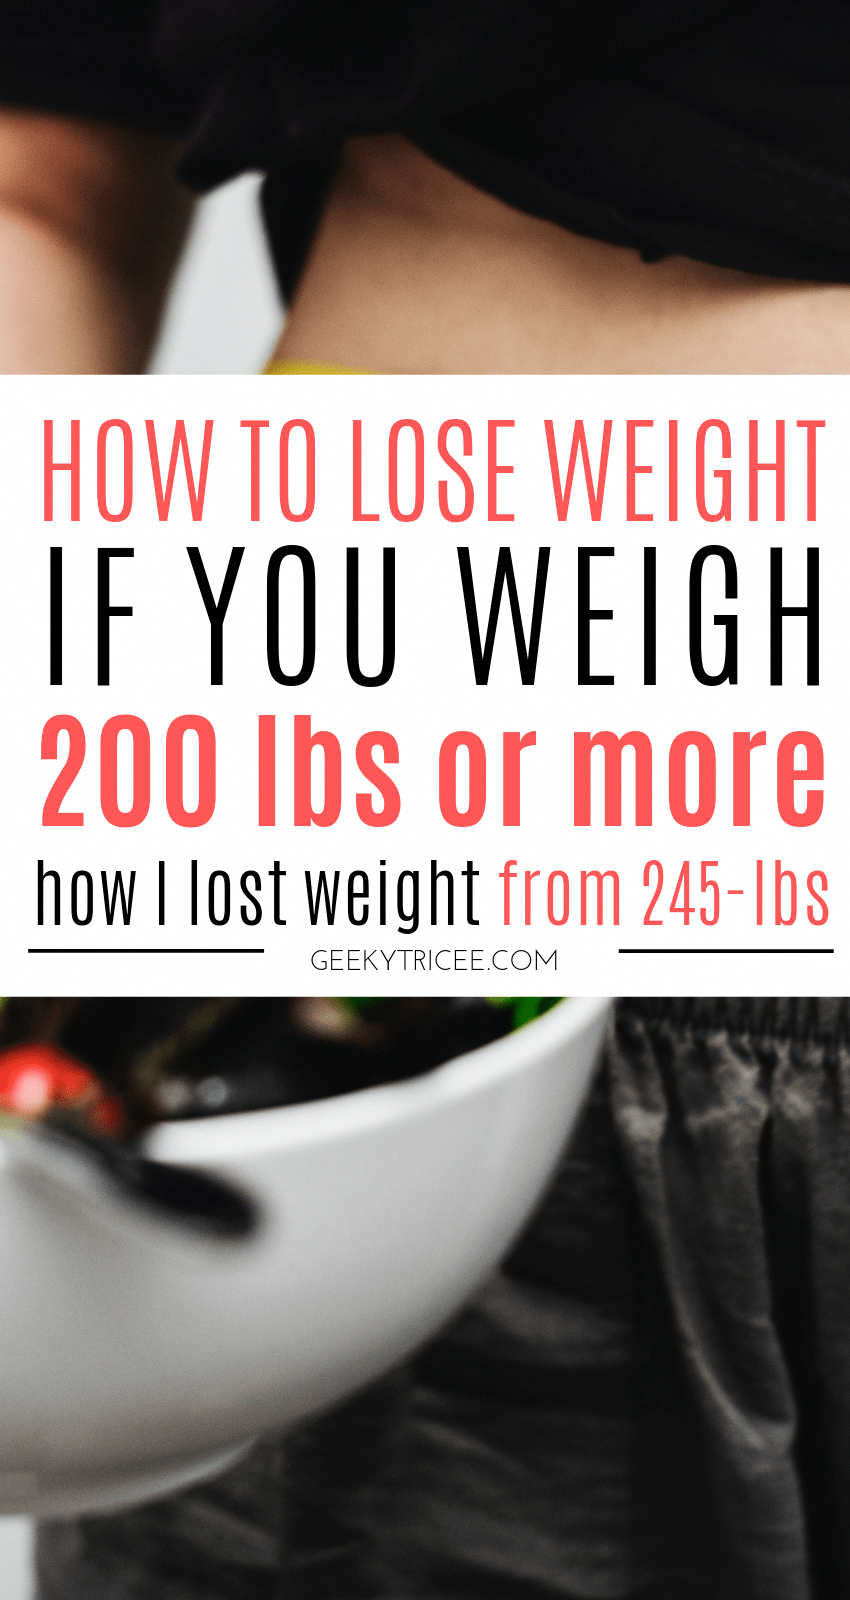 6 simple weight loss tips for losing weight if you weight over 200 lbs. My weight loss transformatio...